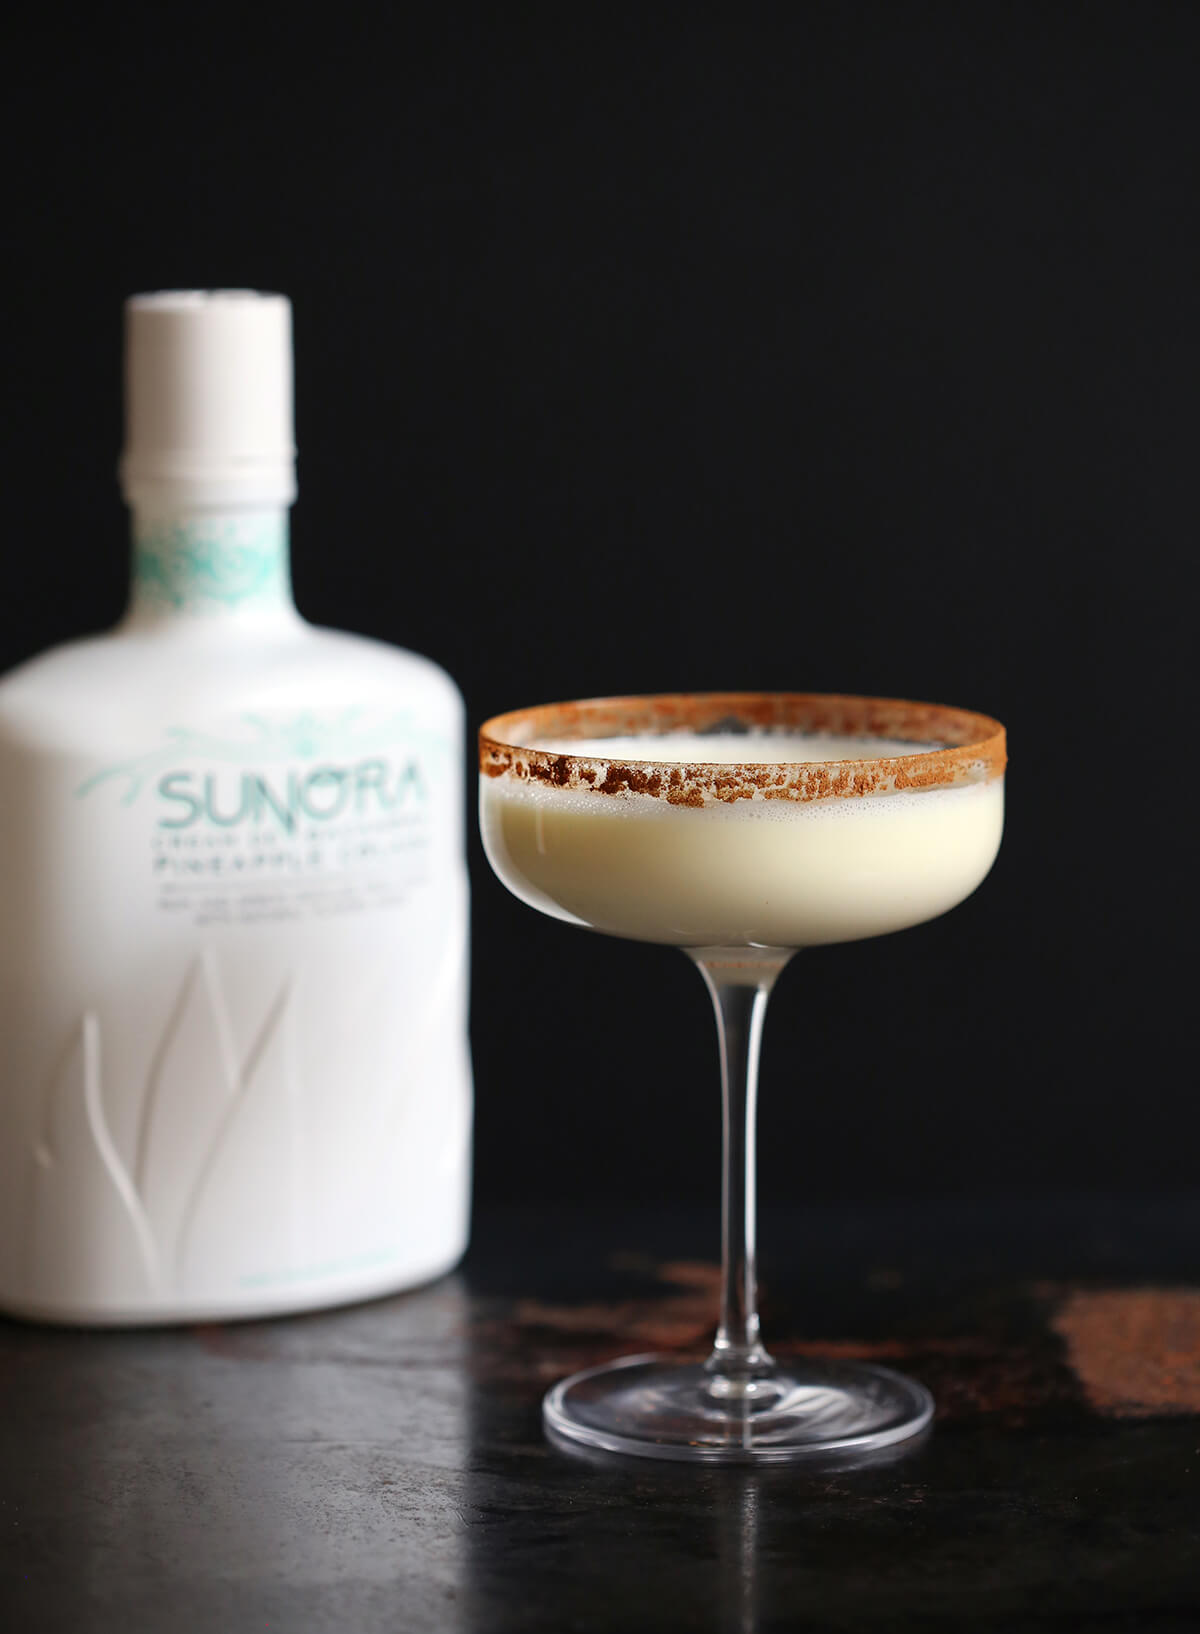 The Sunora Banana Martini